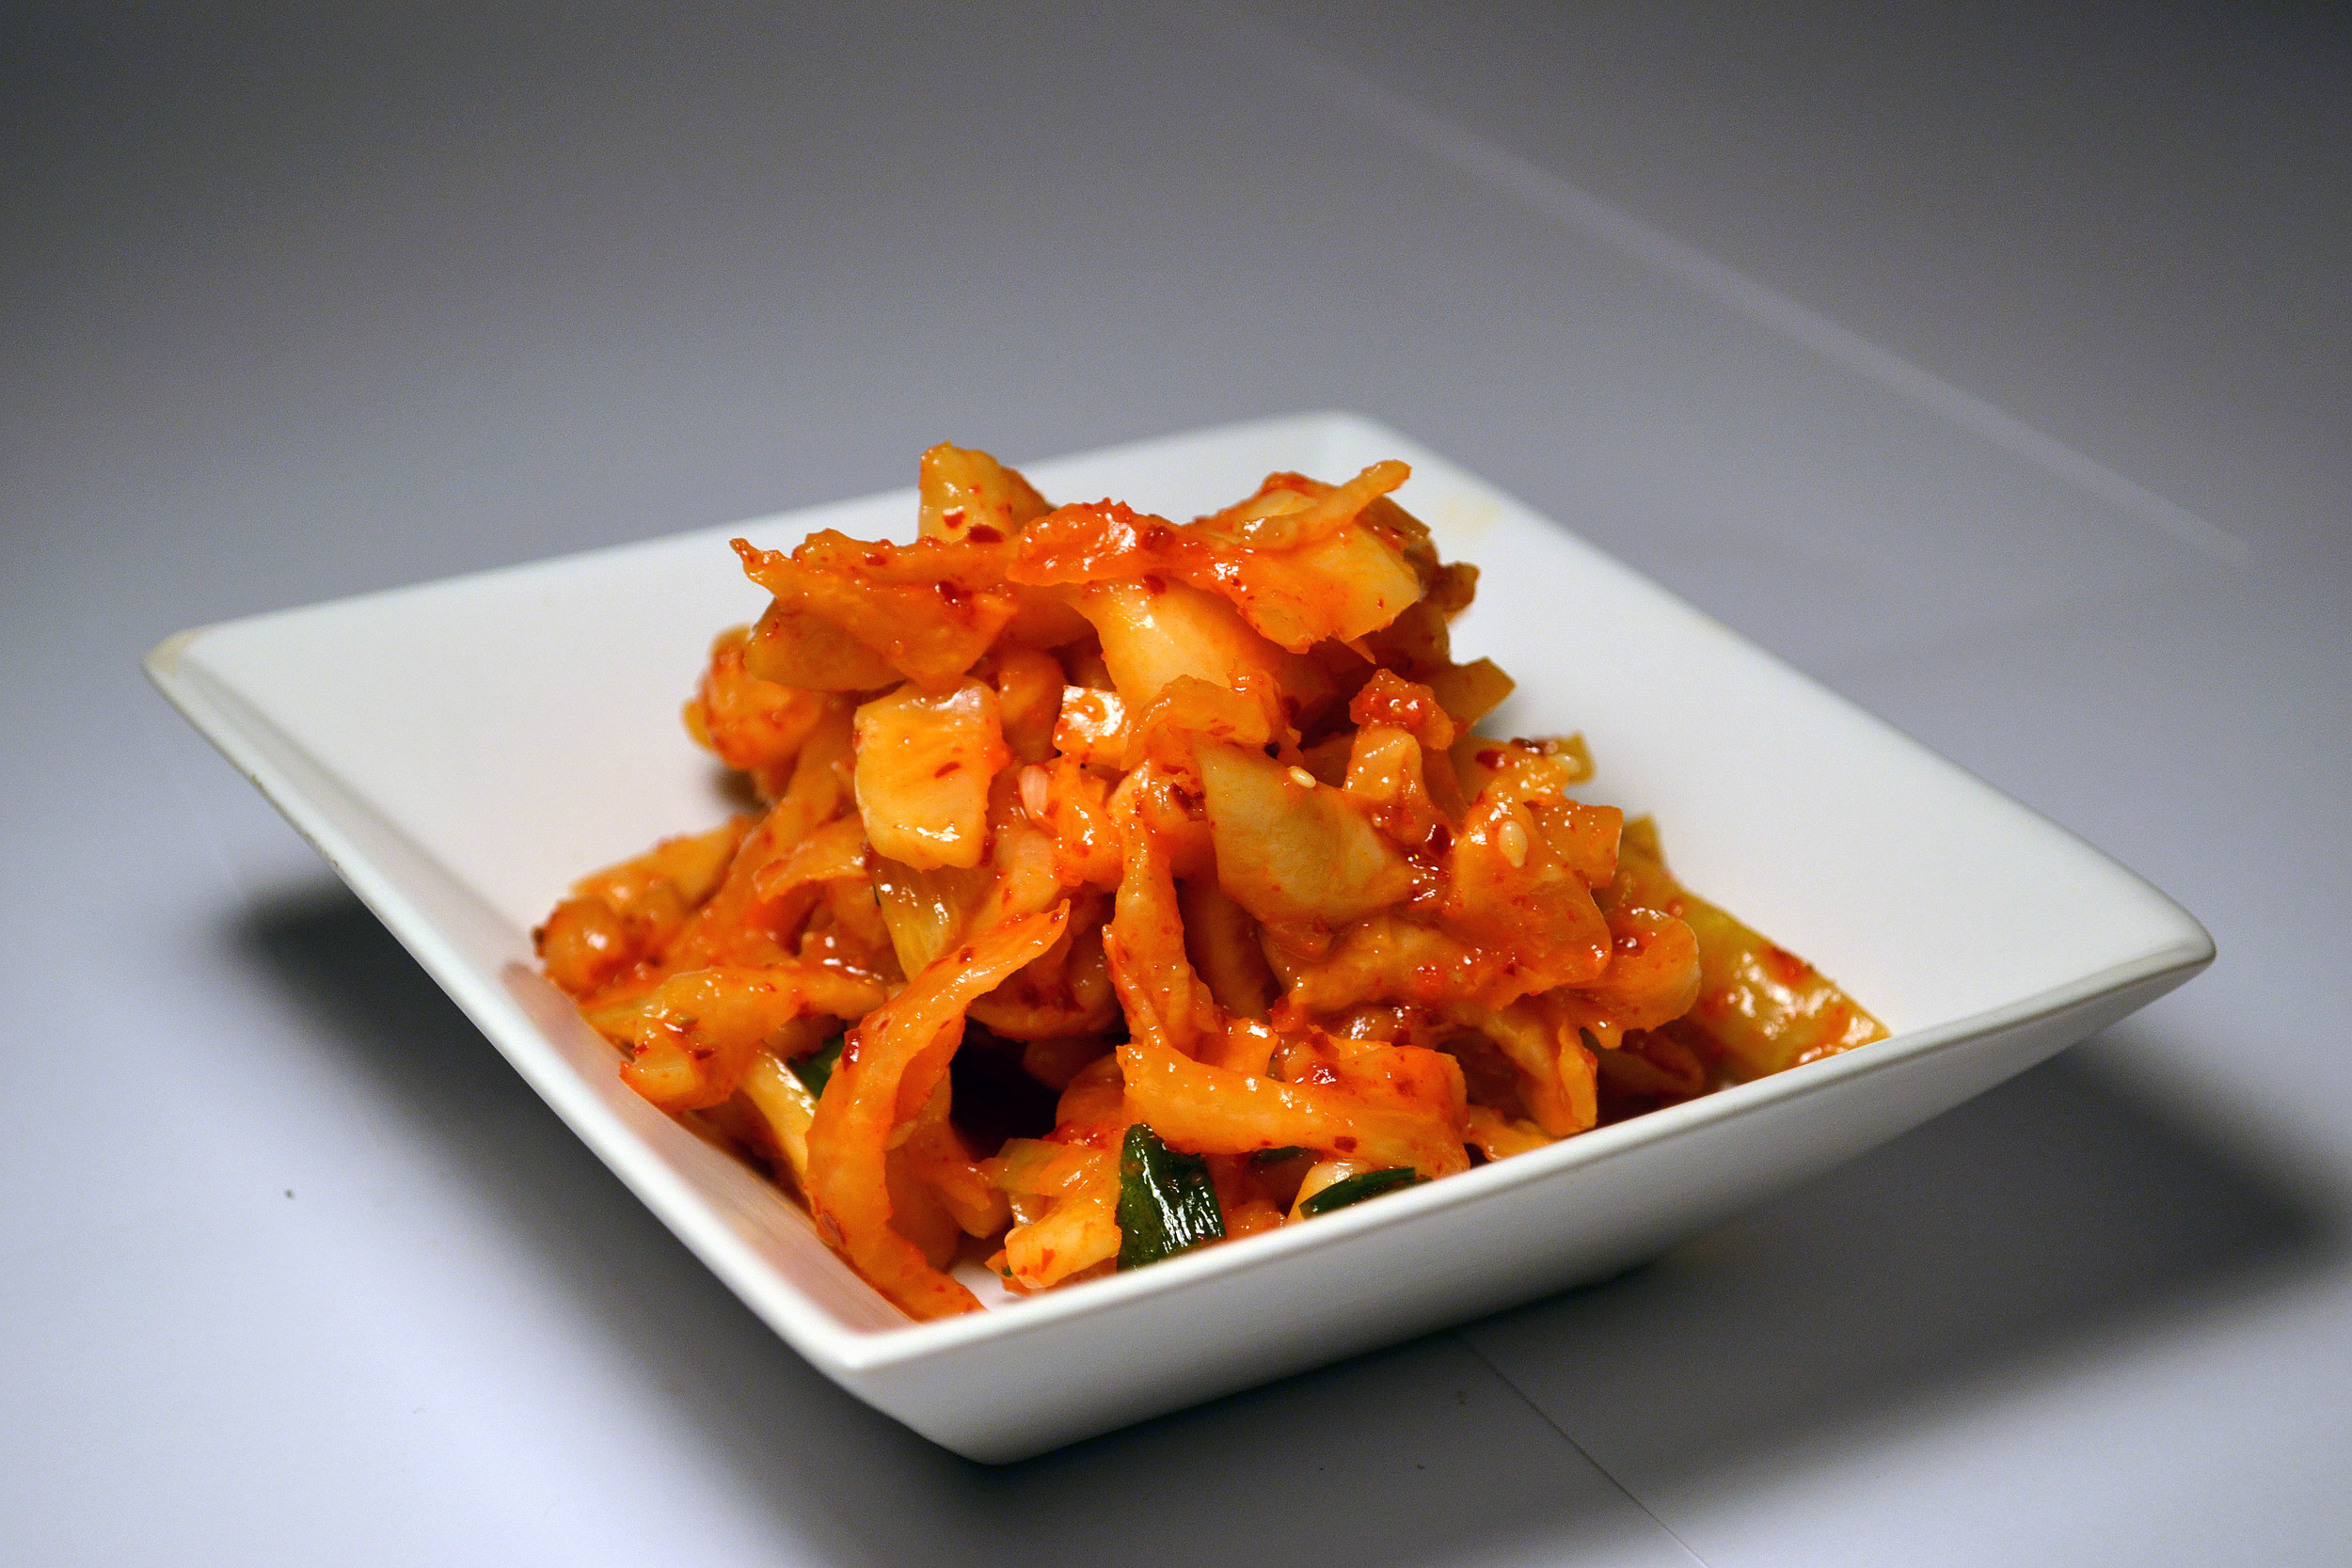 DAIKON MOOCHIM:A drier Kimchi, the Daikon radish is fermented for a month before hand, then turned into Kimchi. Made differently from the other Daikon varieties, but just as crunchy and rich in flavor!